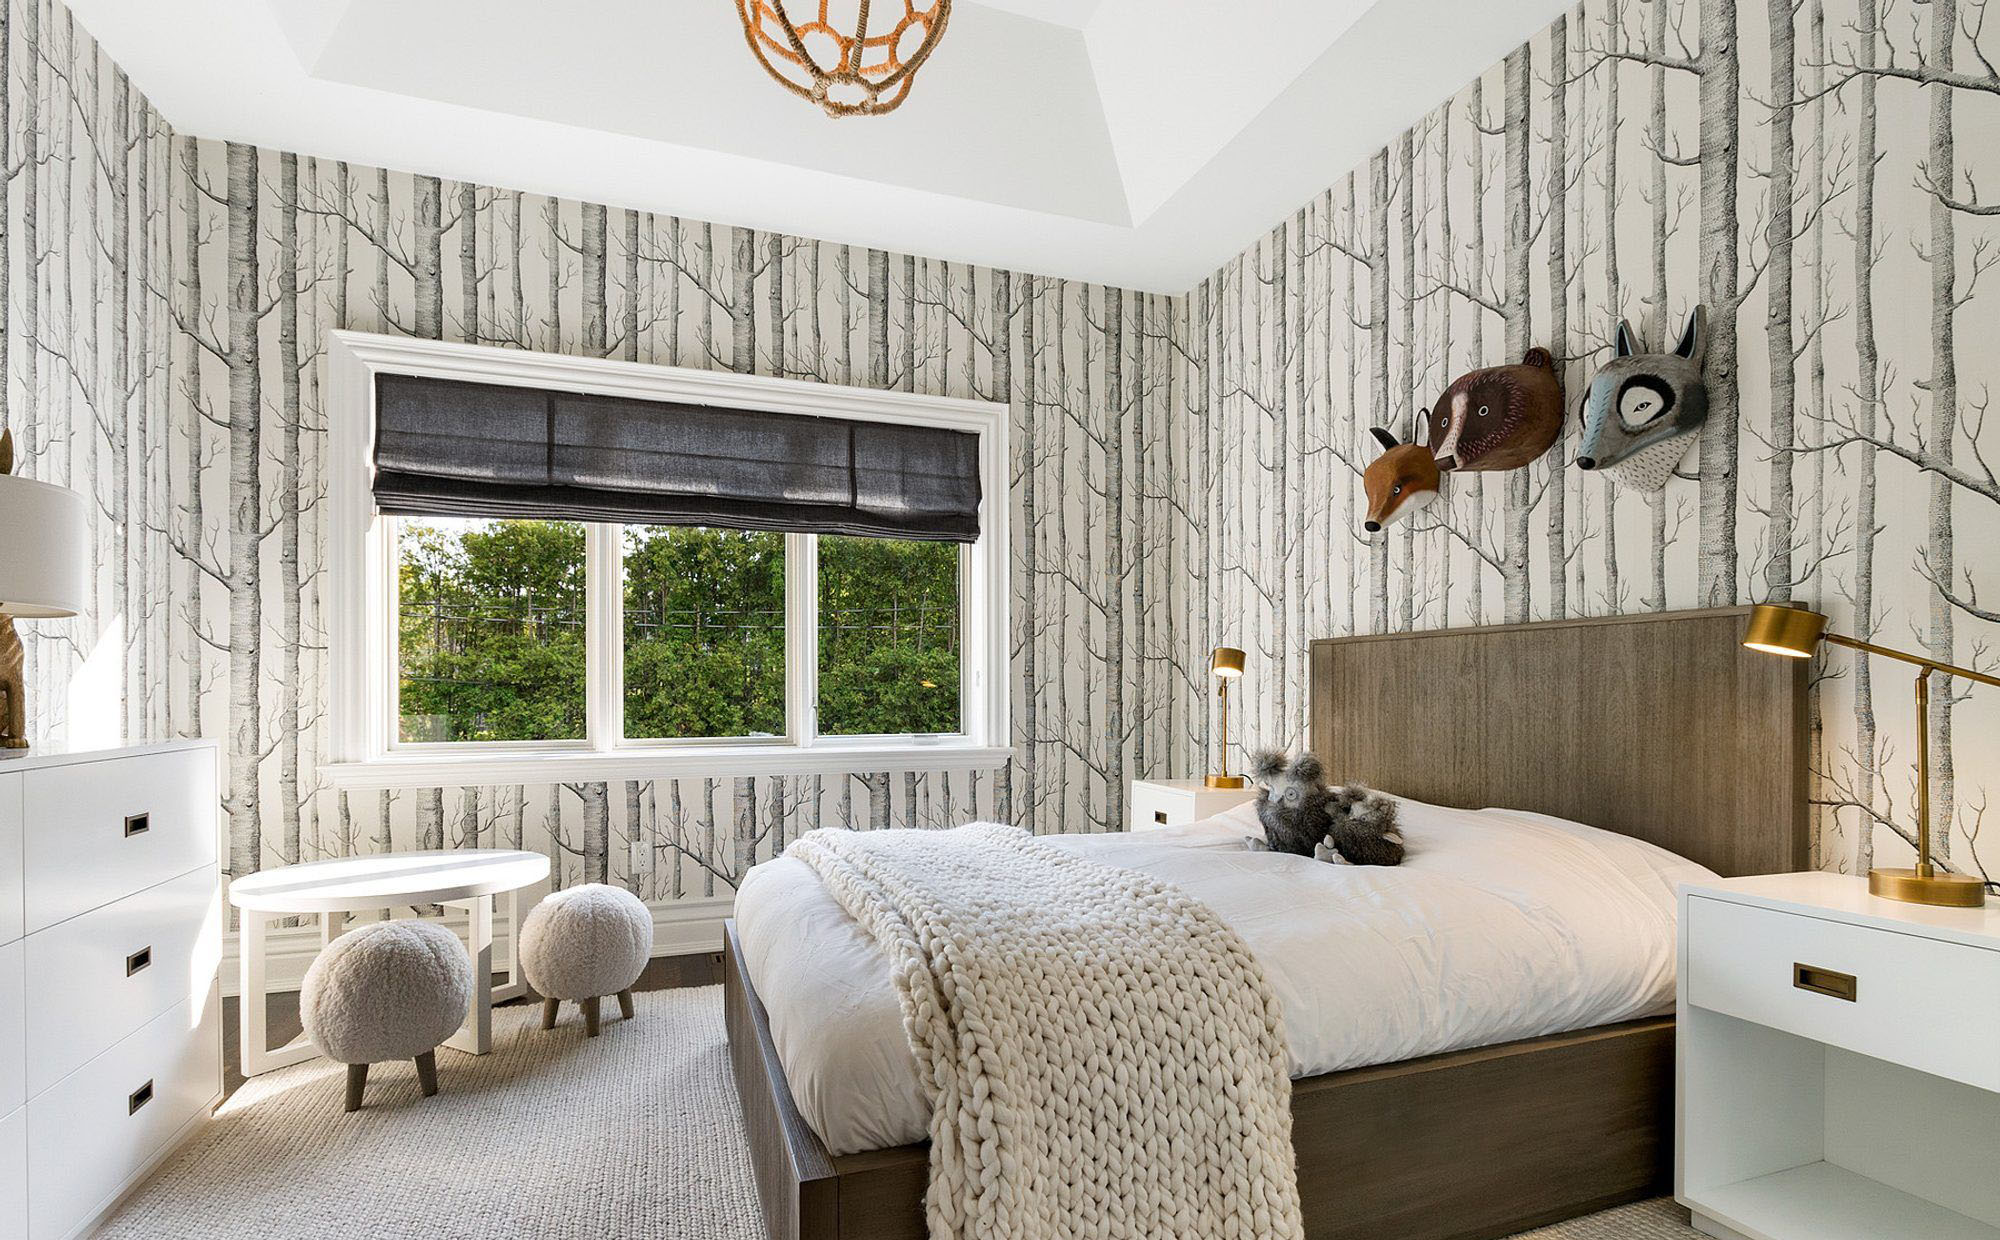 childs bedroom with grey forest wallpaper, wood bed frame and white furniture. small bedroom design ideas.